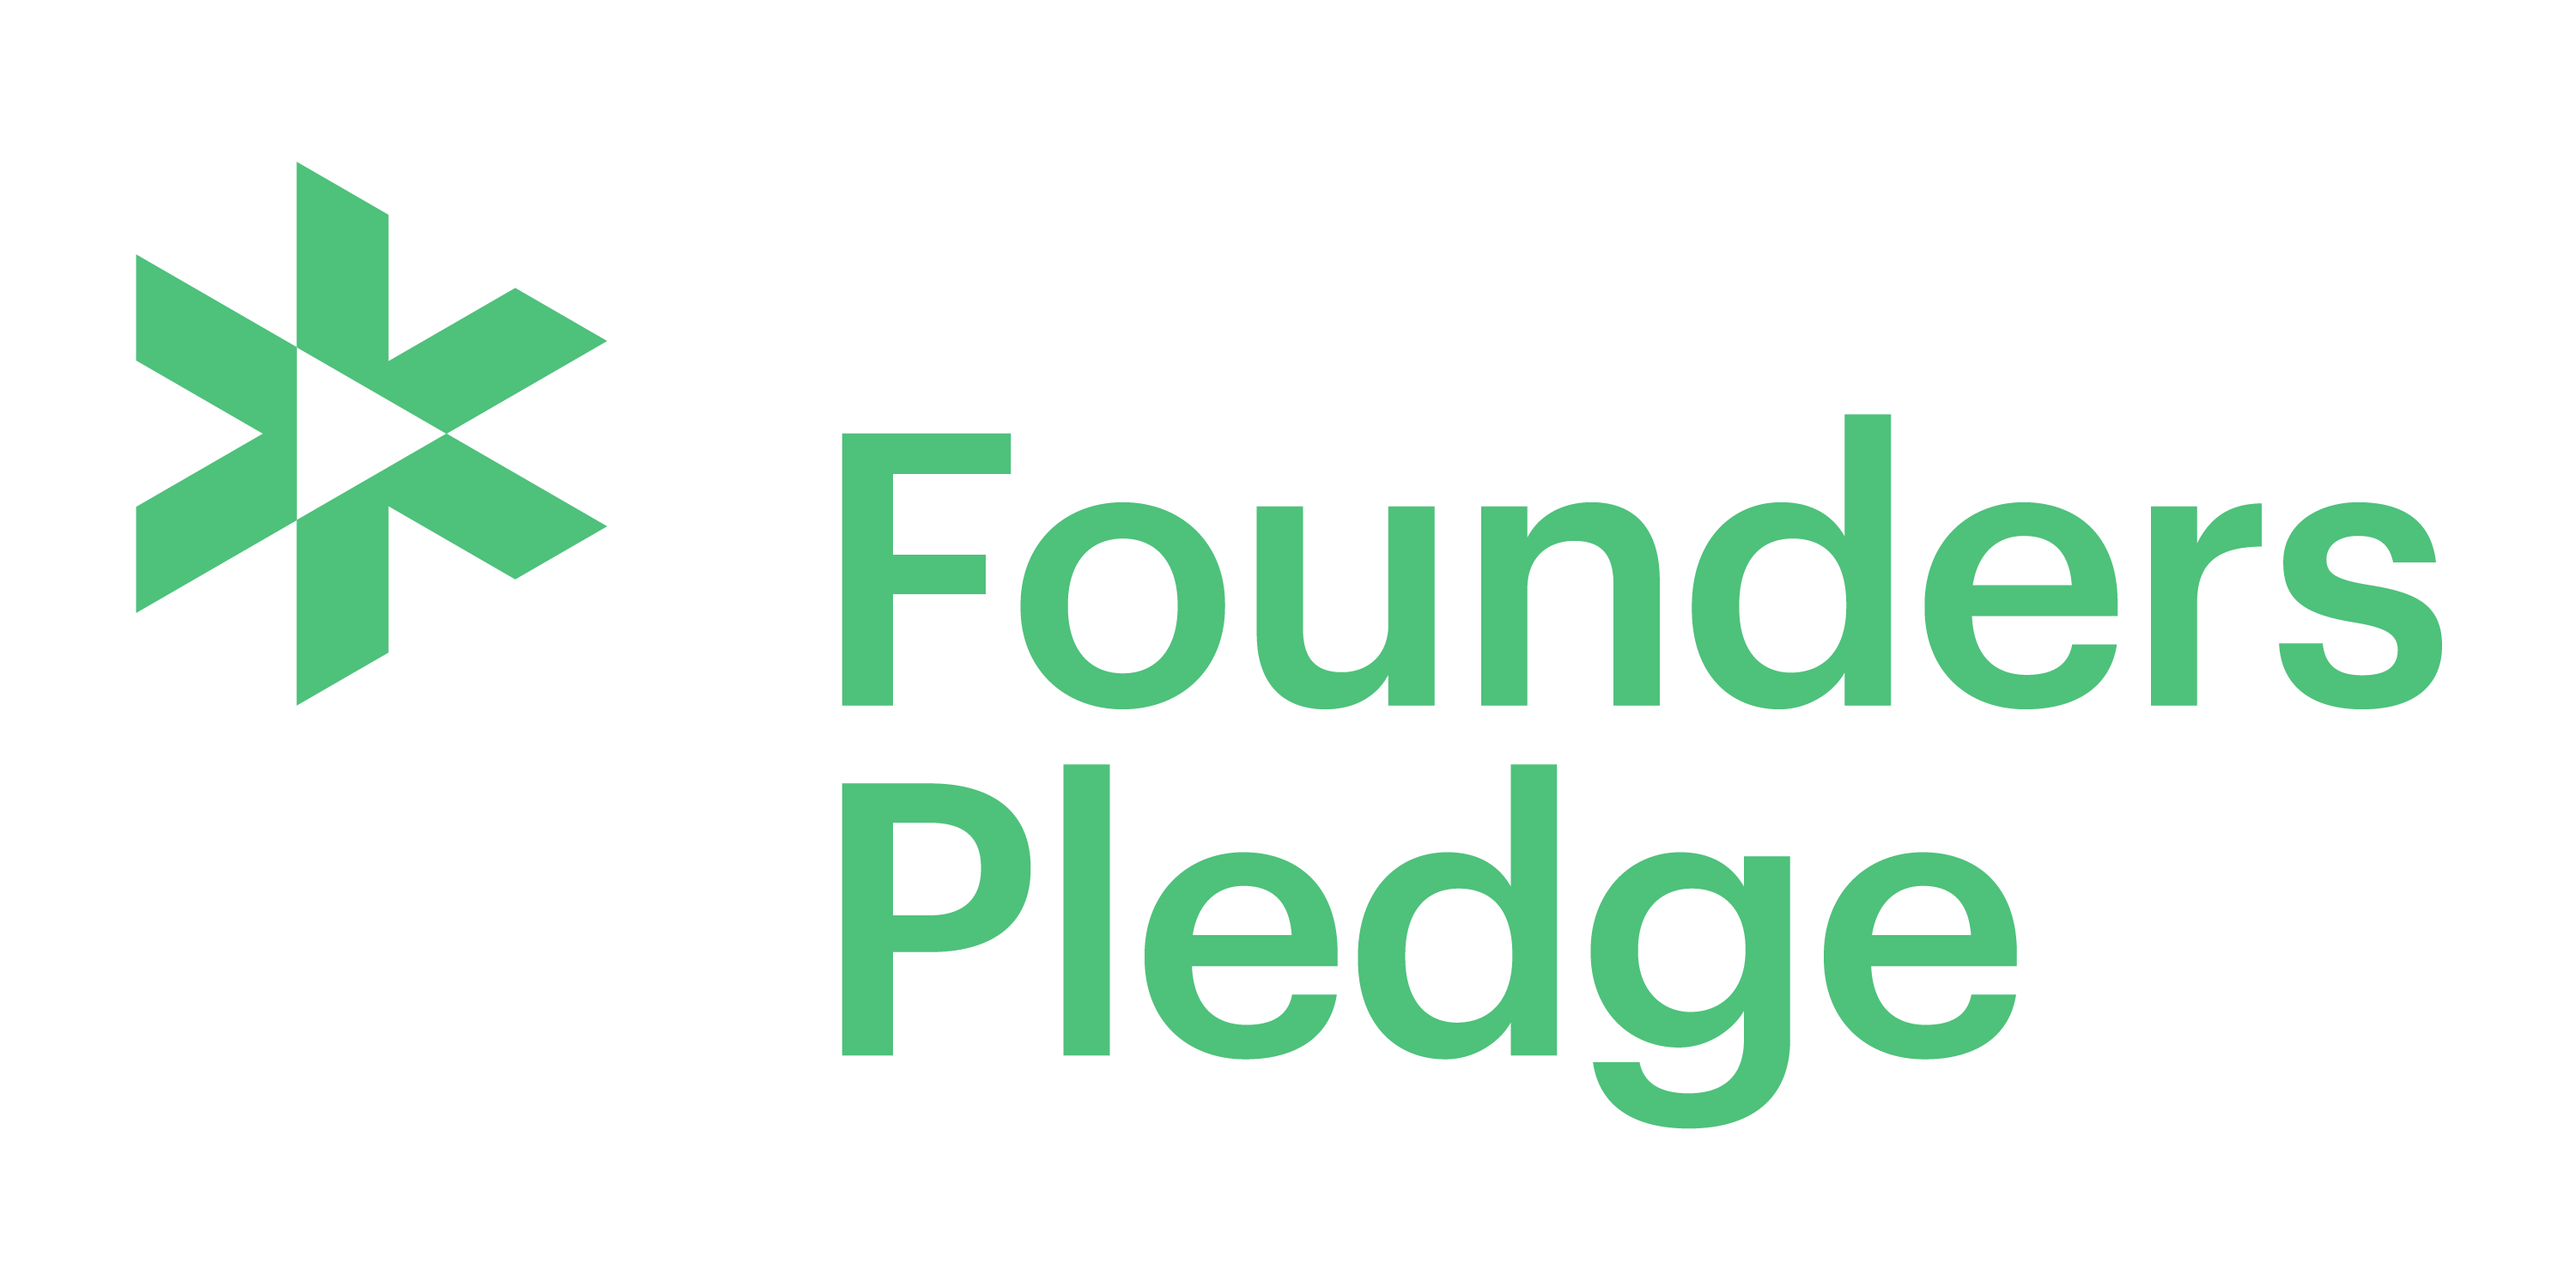 About Us | Founders Pledge